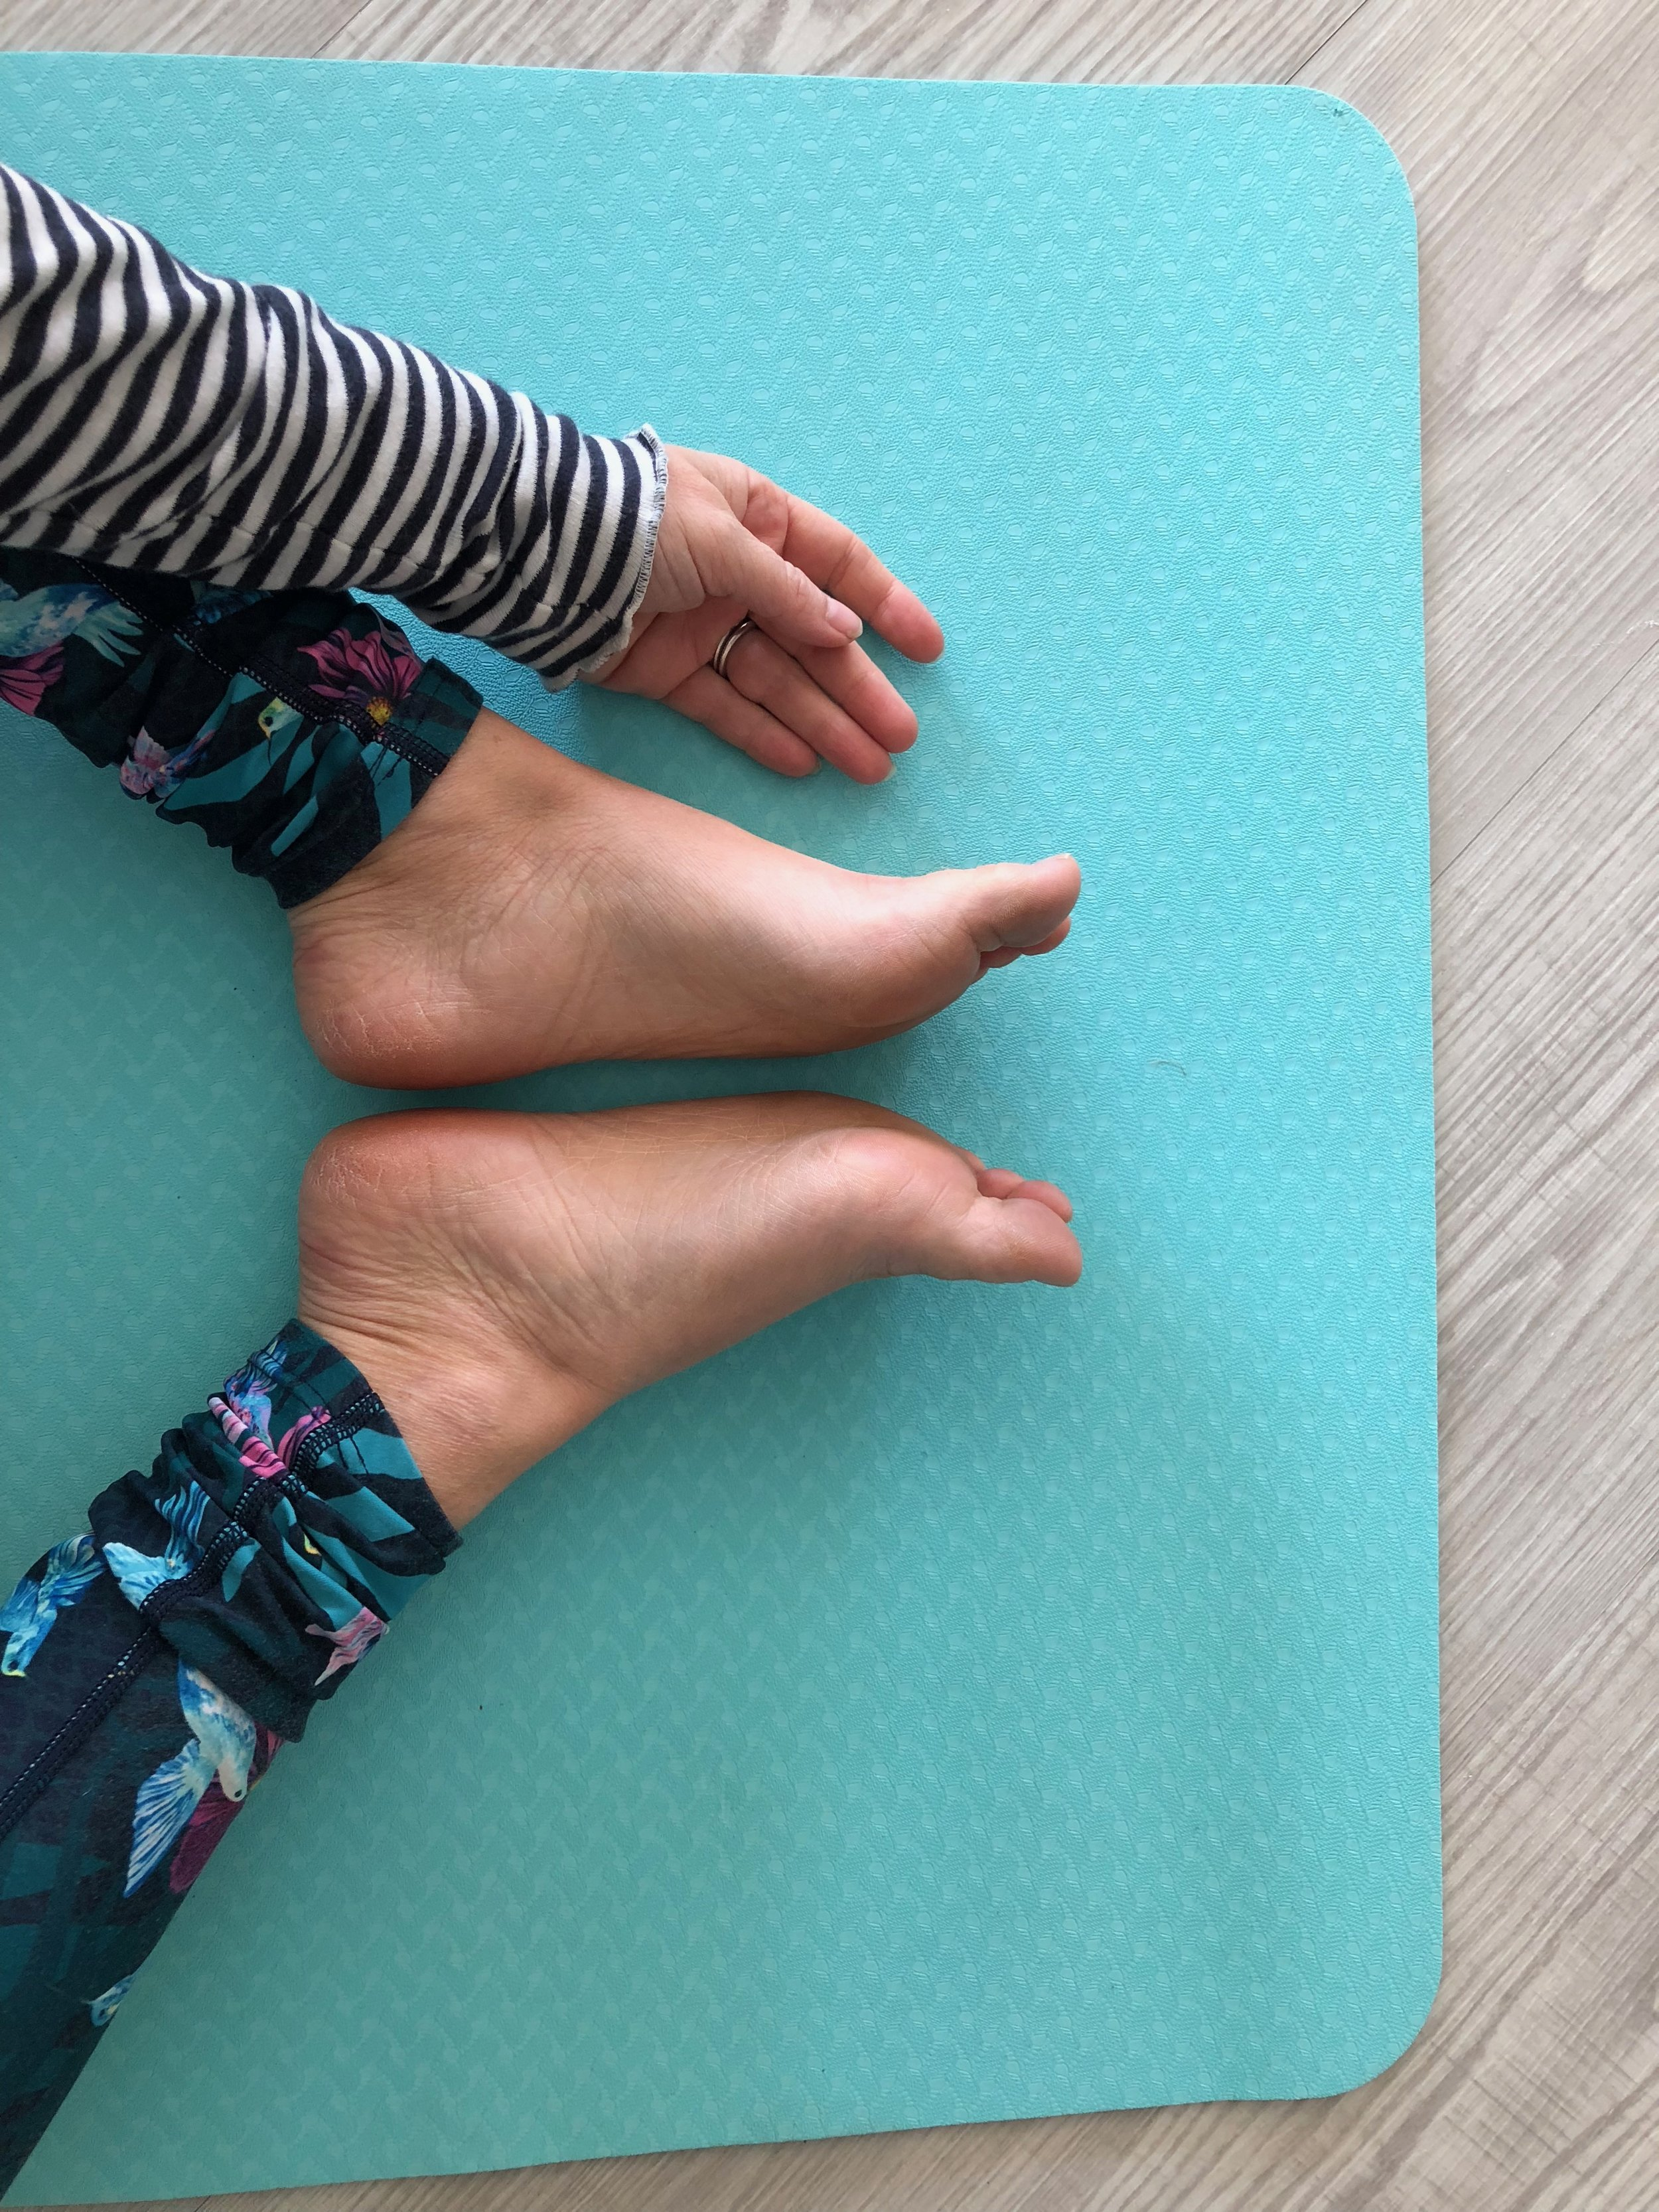 In Butterfly, feet are towards each other, but we are wishing to be muscularly soft in yin, so don't use the muscles of the legs to keep the feet together, put your body in this butterfly/diamond shape then relax, allow even the soles of the feet to fall open and allow the fascia of the body to access the stretch.